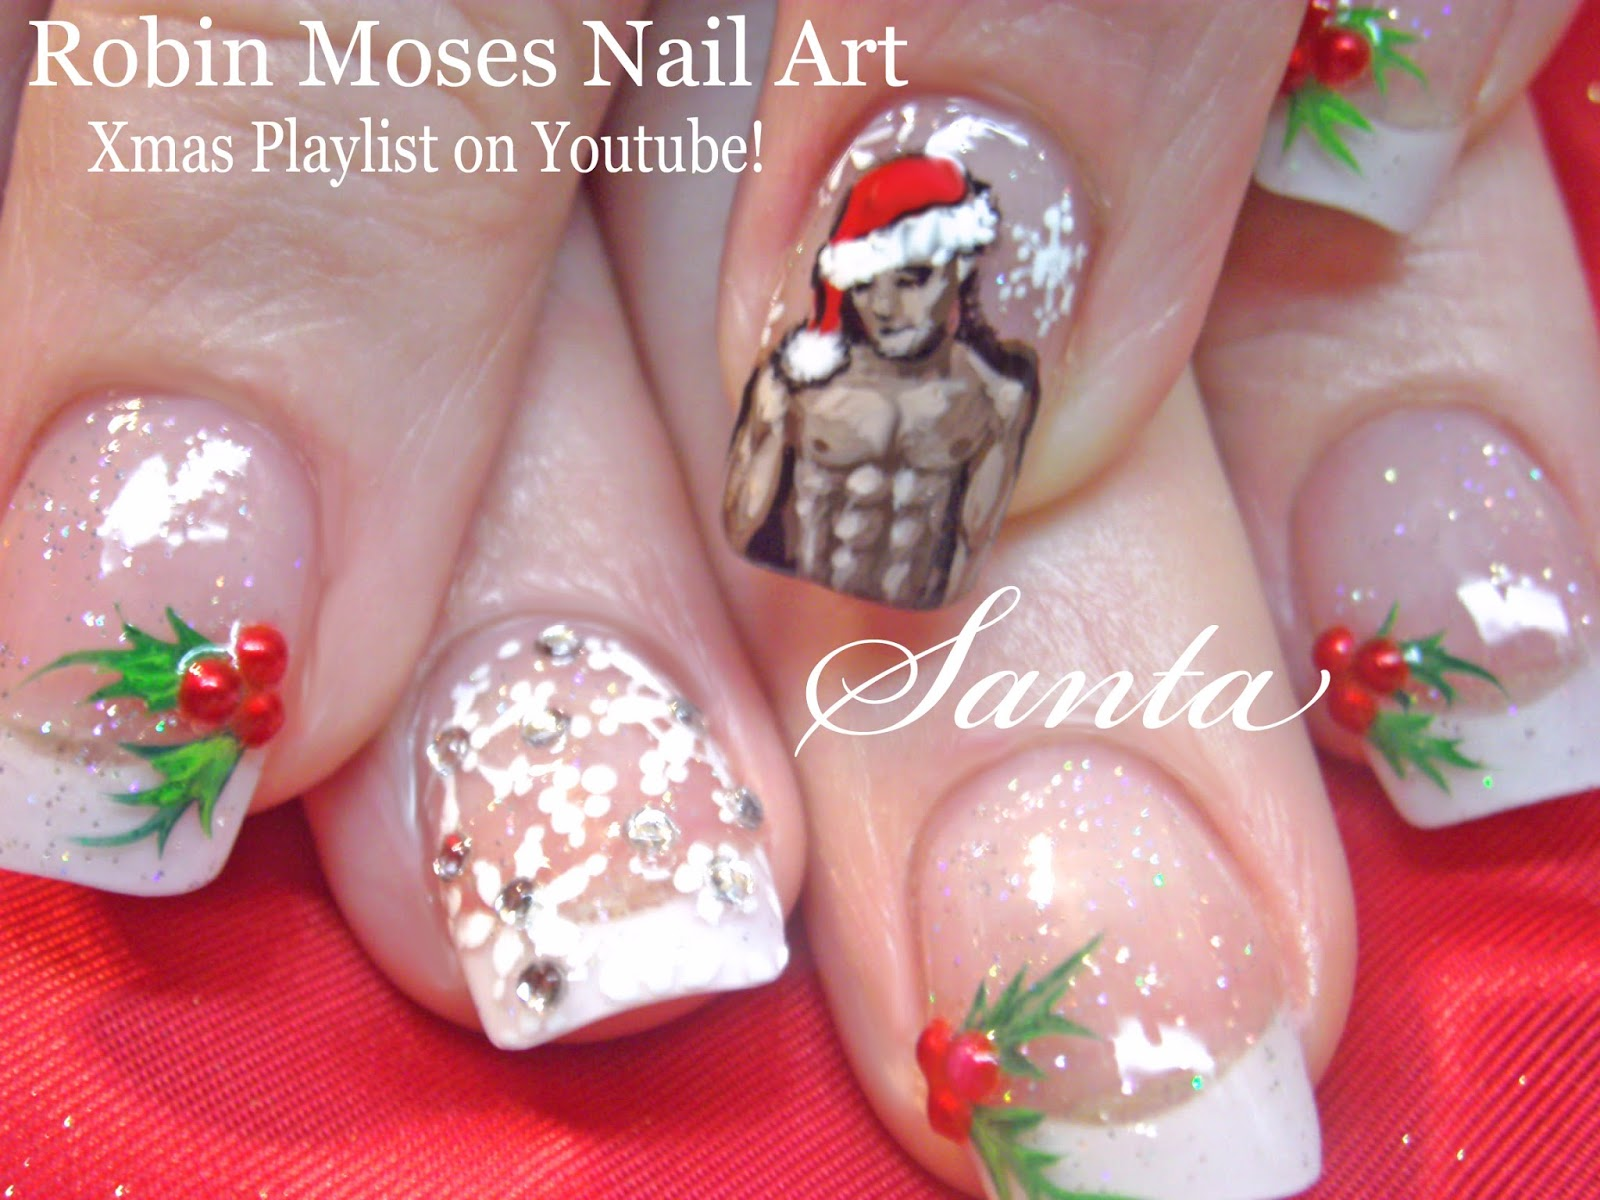 Robin moses nail art christmas nails 2 fun new designs up for cute christmas nails sexy santa victorias secret santa red and gold nails red and gold design xmas nails xmas nail art christmas 2015 prinsesfo Gallery